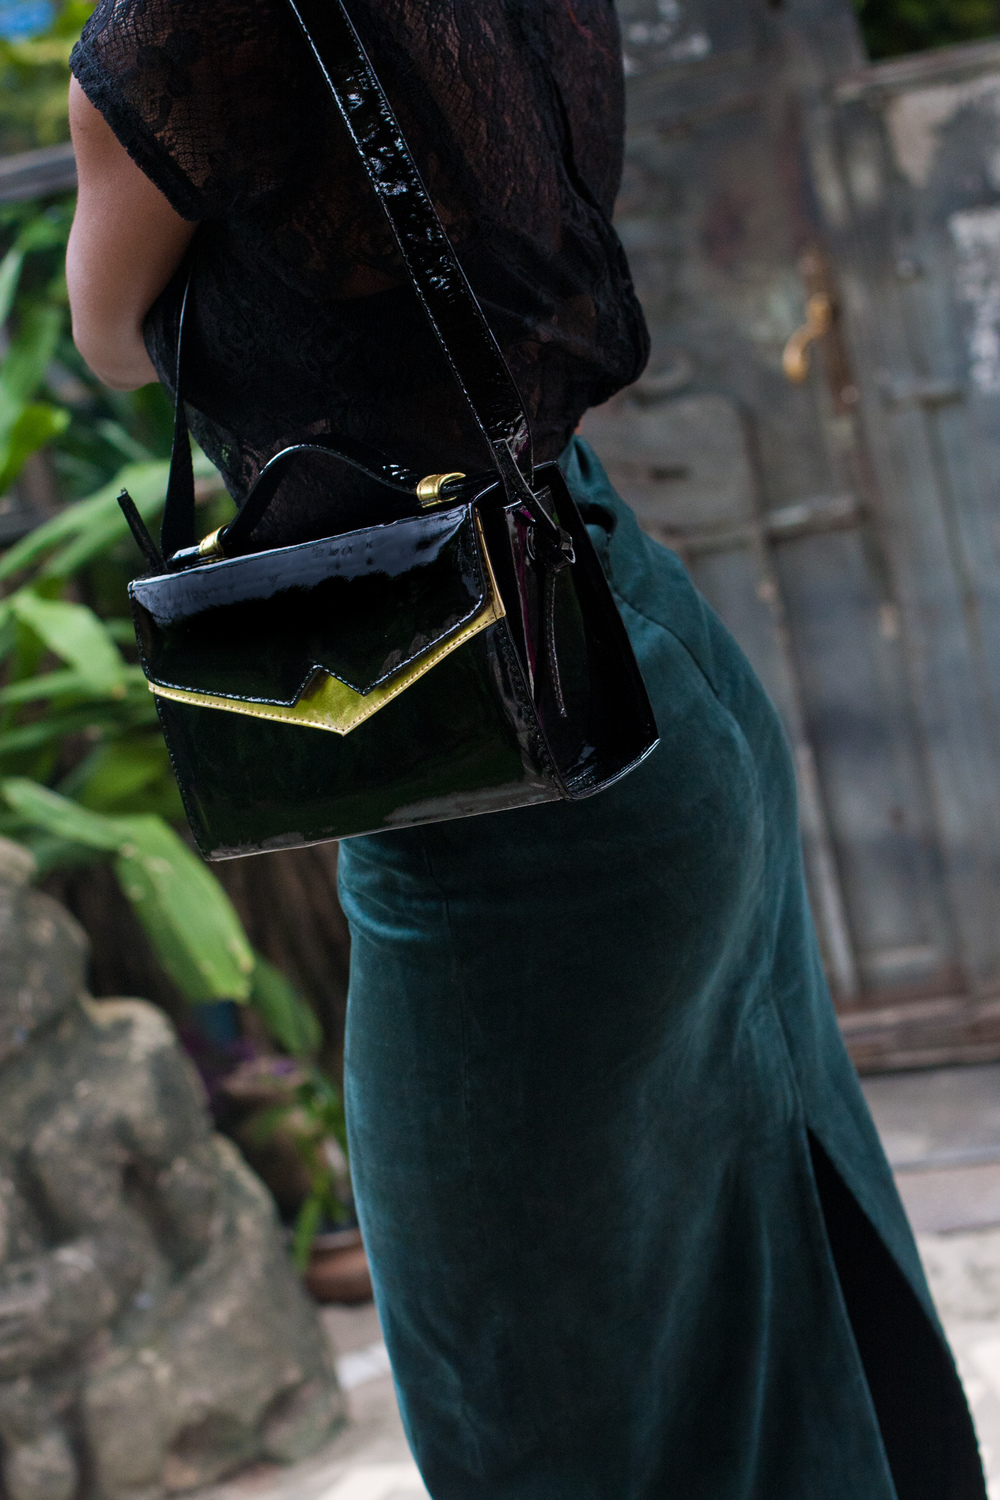 Patent leather 'TKO' handbag